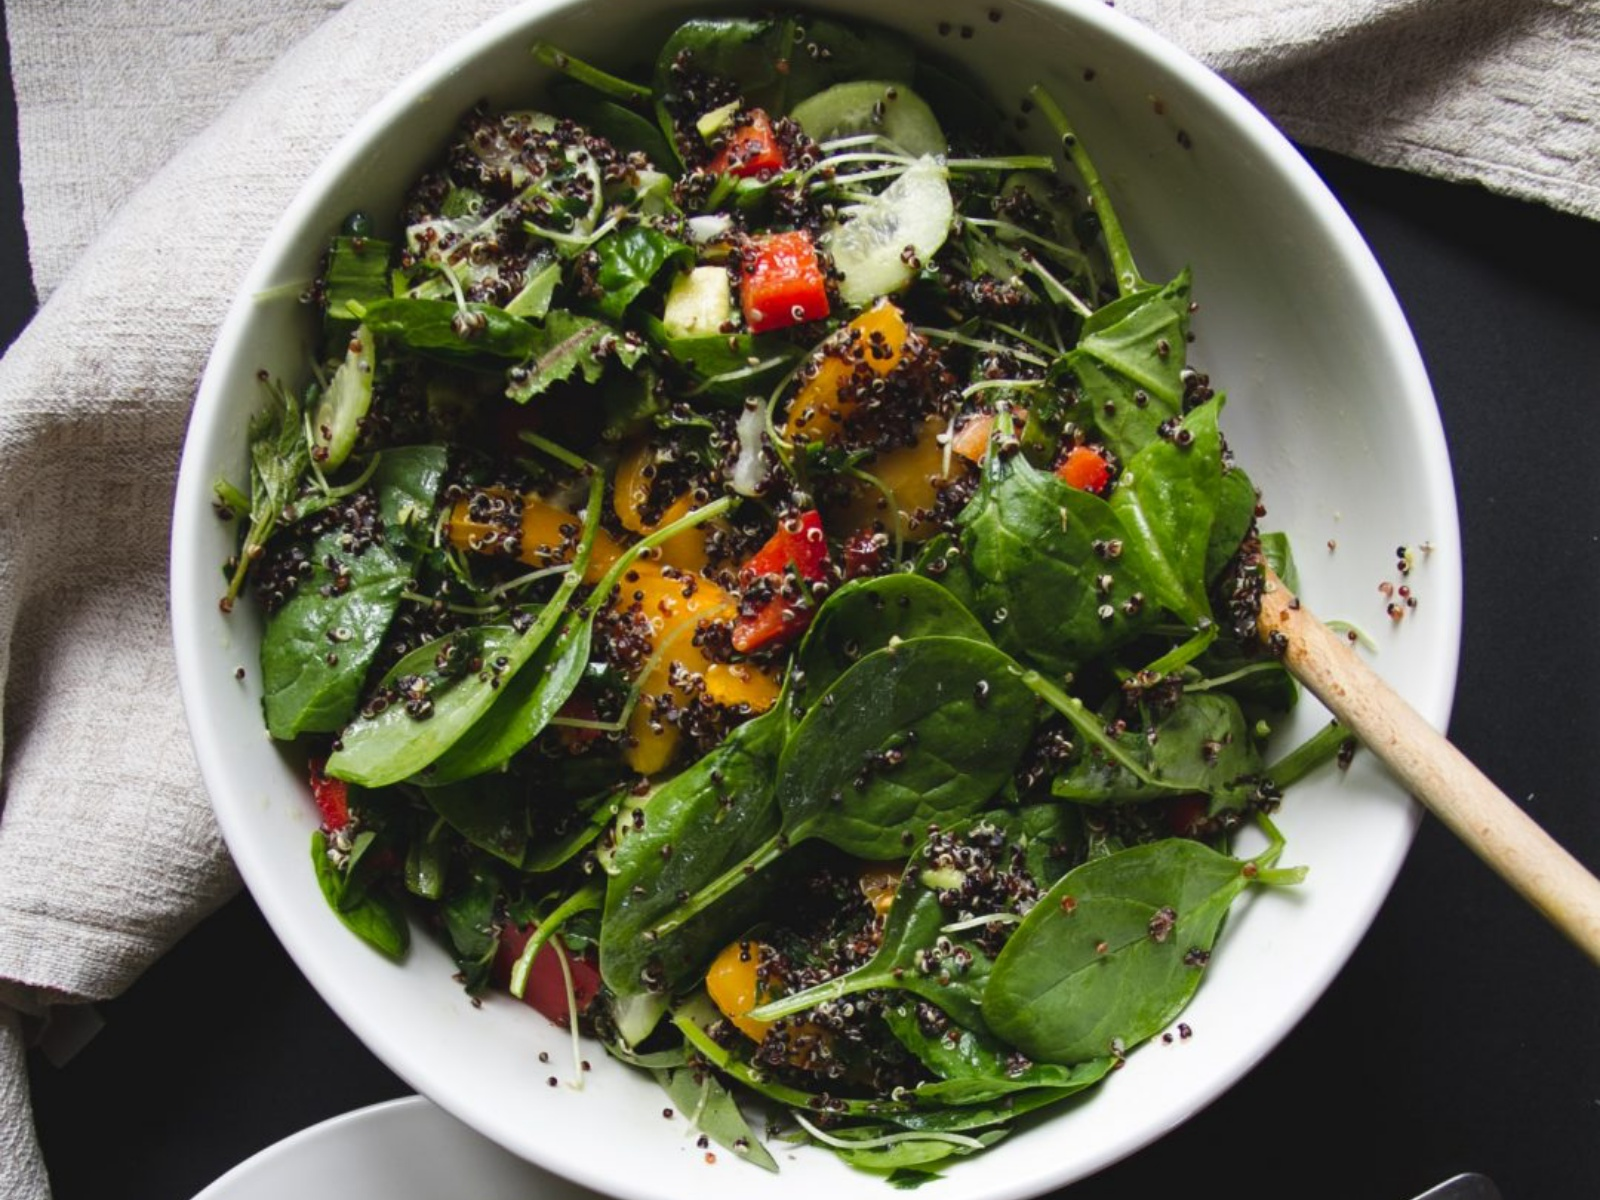 Flavorful and filling spinach and quinoa salad